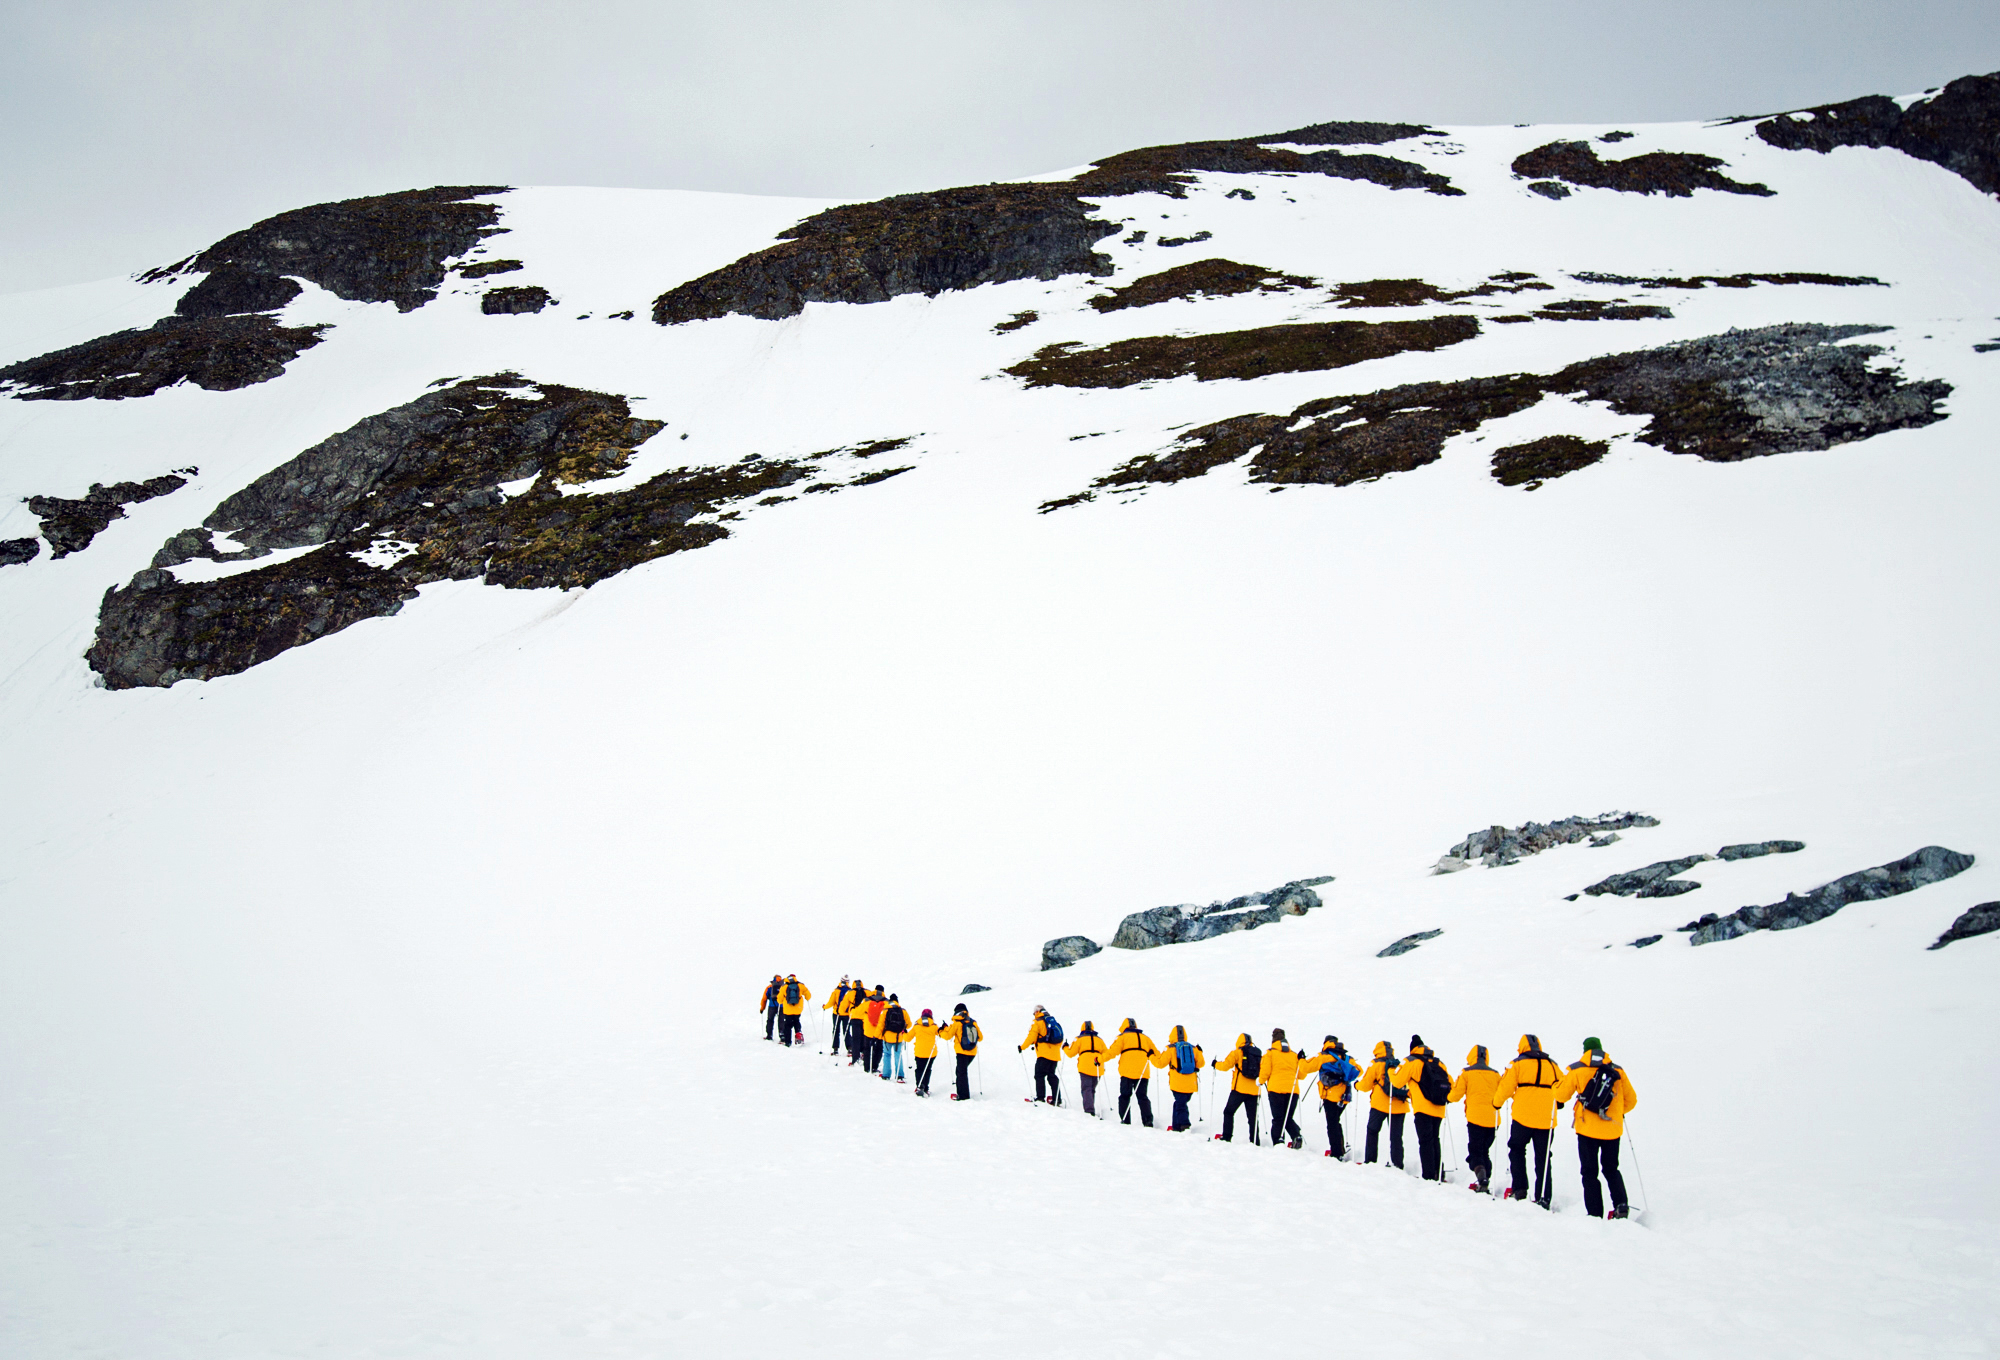 Quark Passenger Snowshoeing in Antarctica. Photo: Acacia Johnson